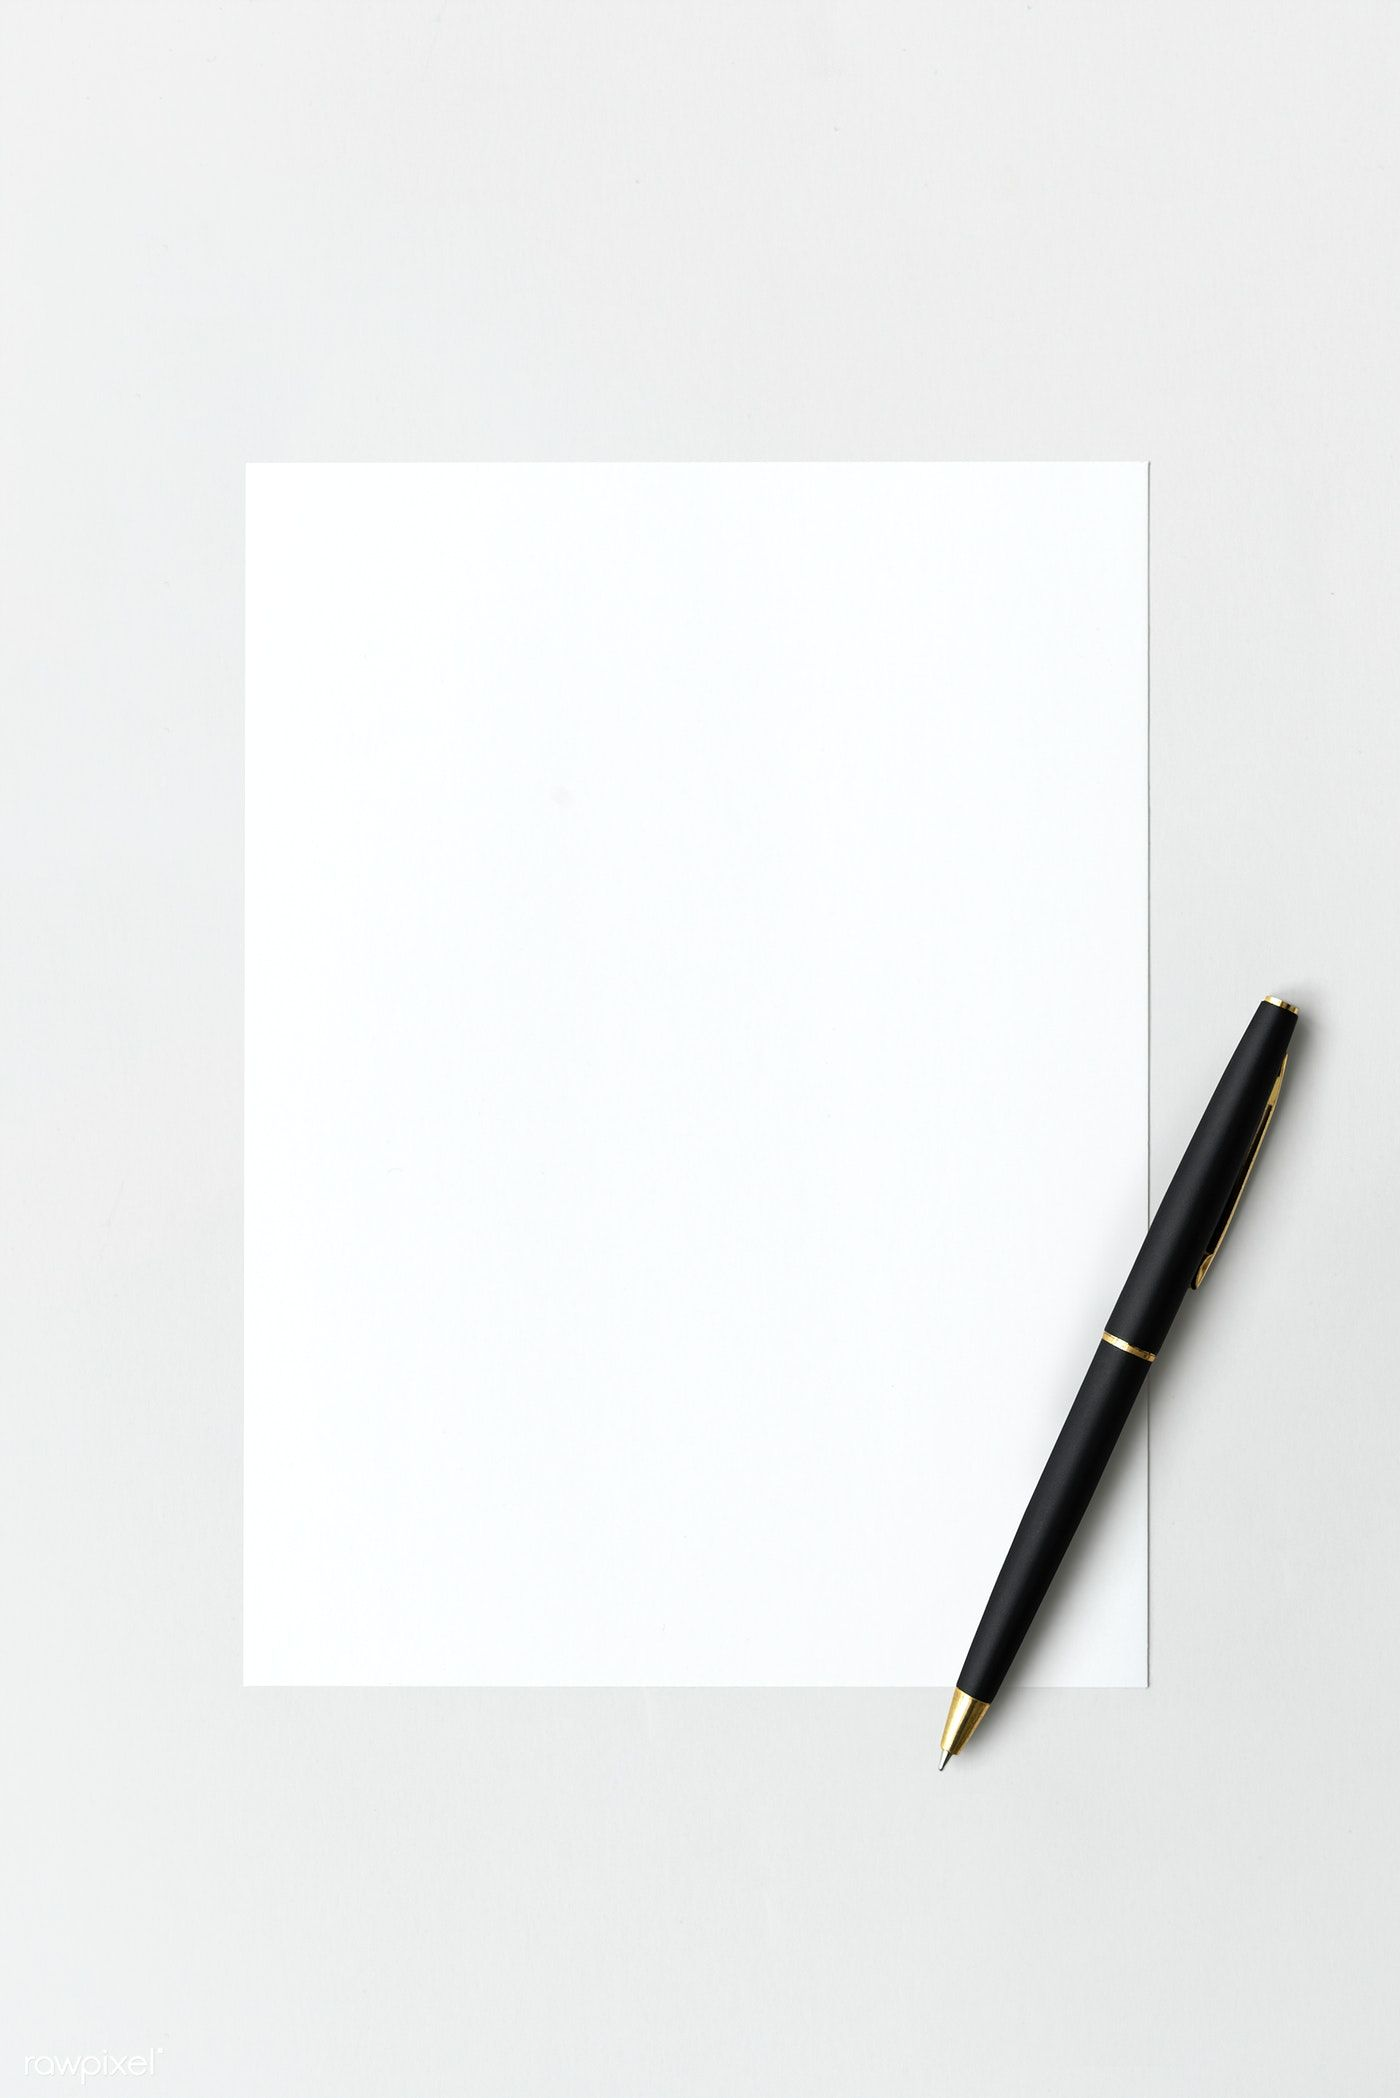 Download Premium Psd Of Blank White Paper With Black Pen 1202057 Paper Texture White White Paper Book Background